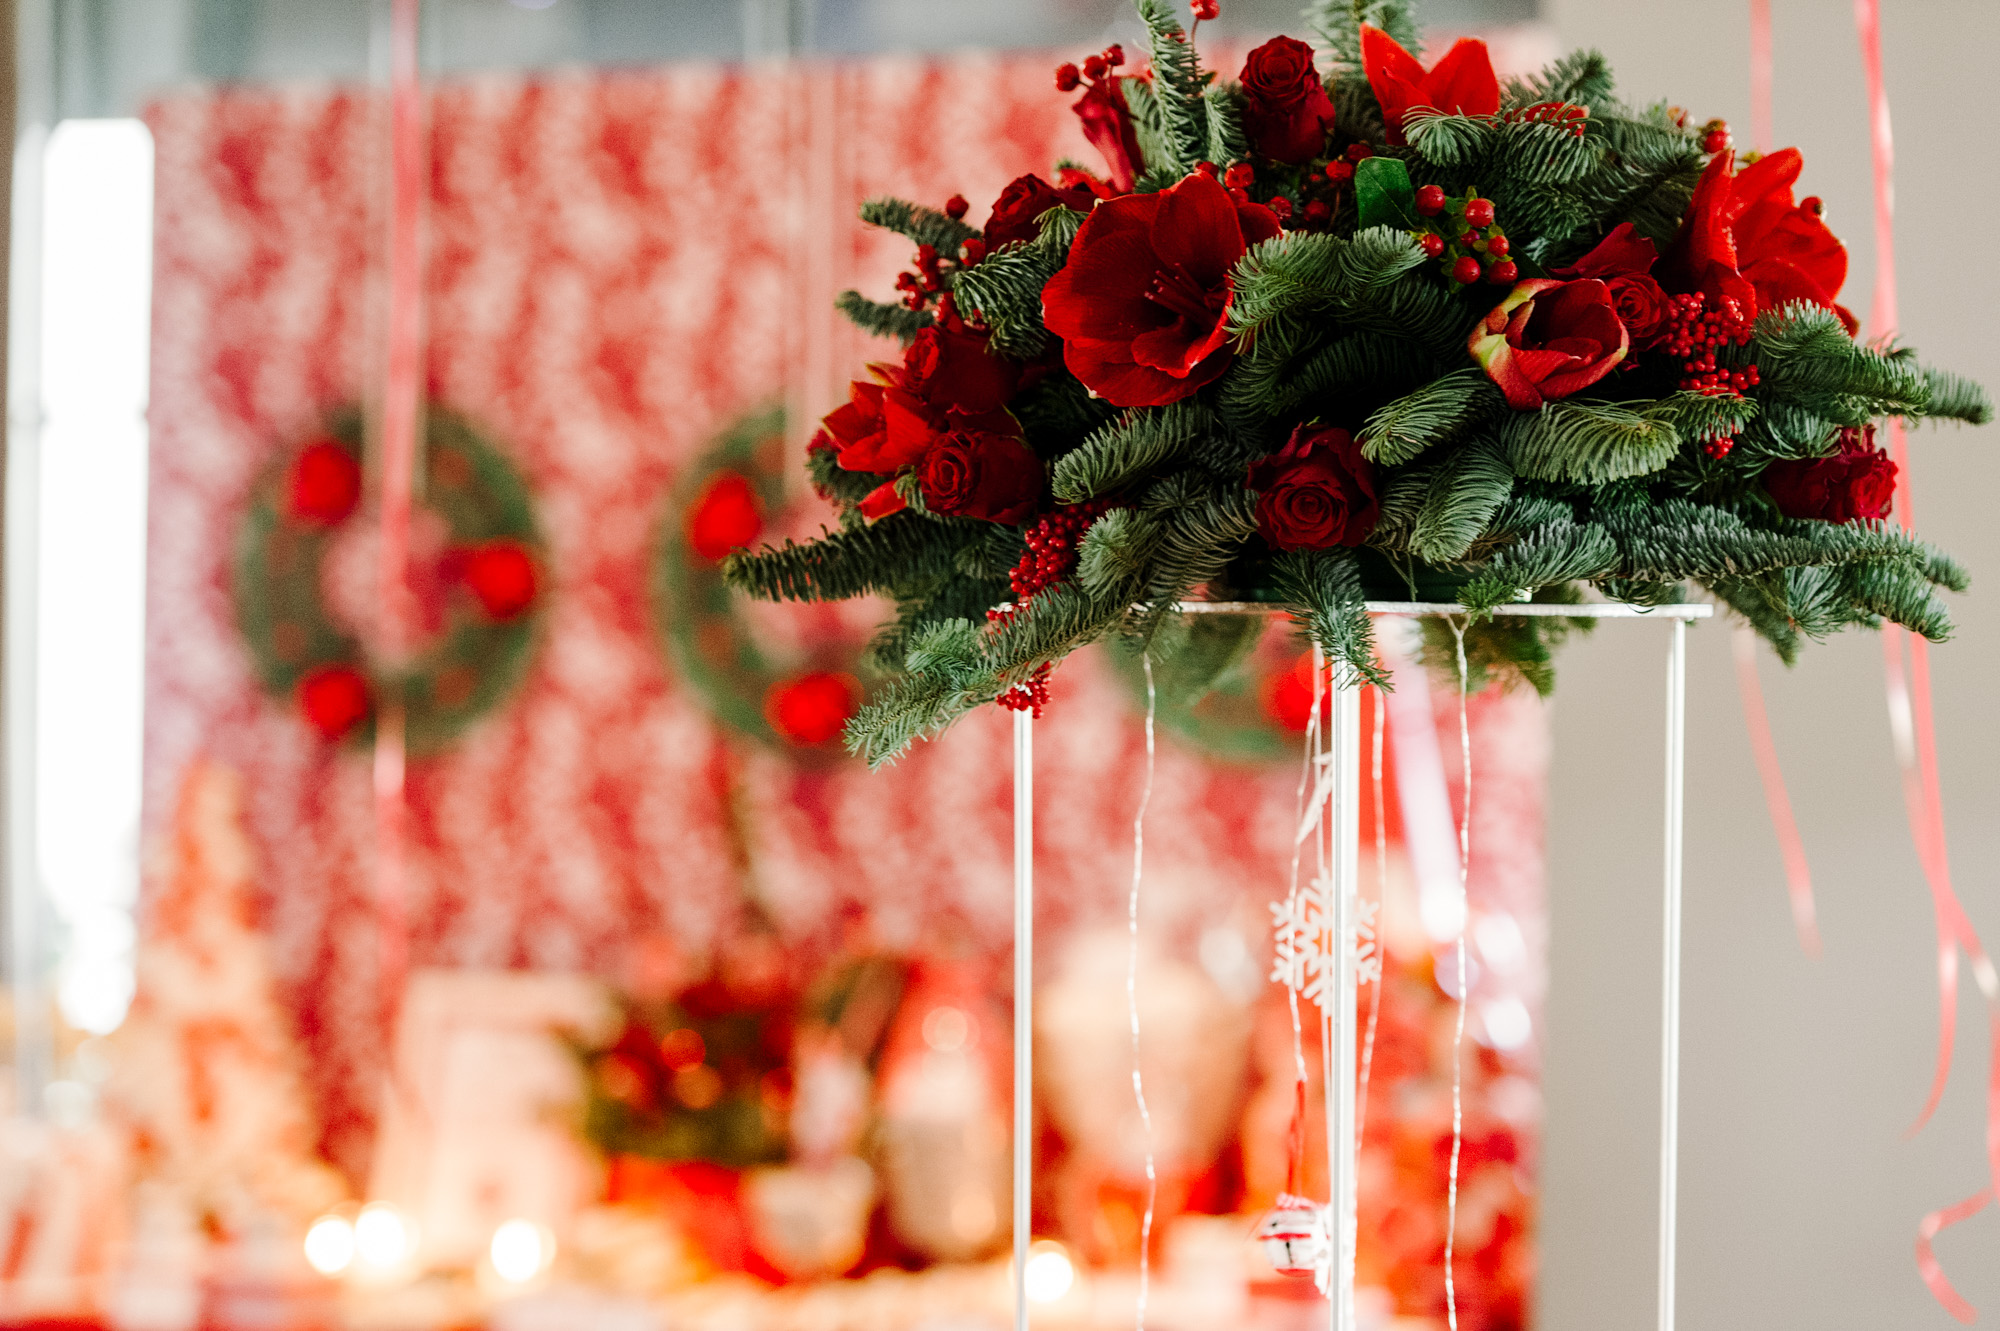 Christmas wedding in red & green shades